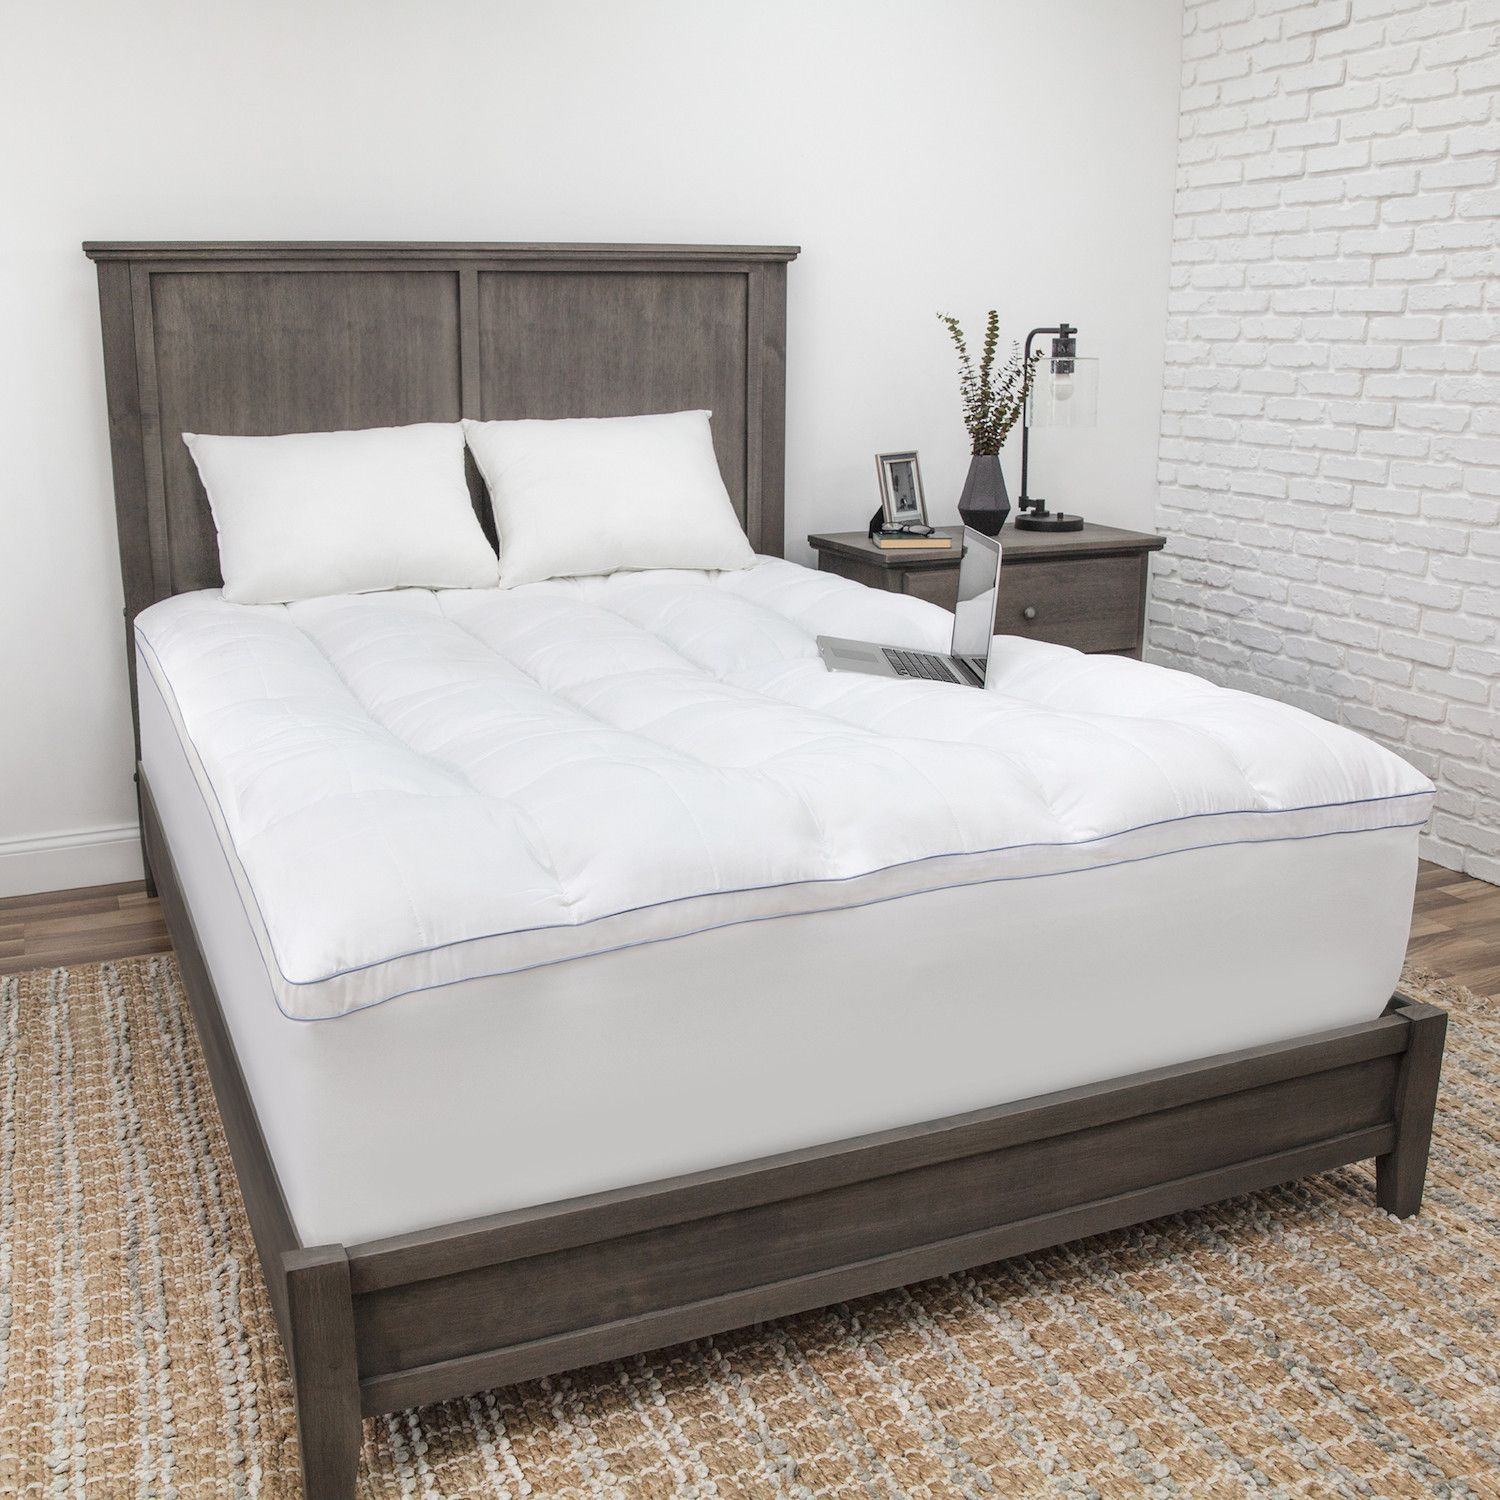 Memory Foam Mattress Toppers - Mattress Pads & Toppers, Bed & Bath | Kohl's